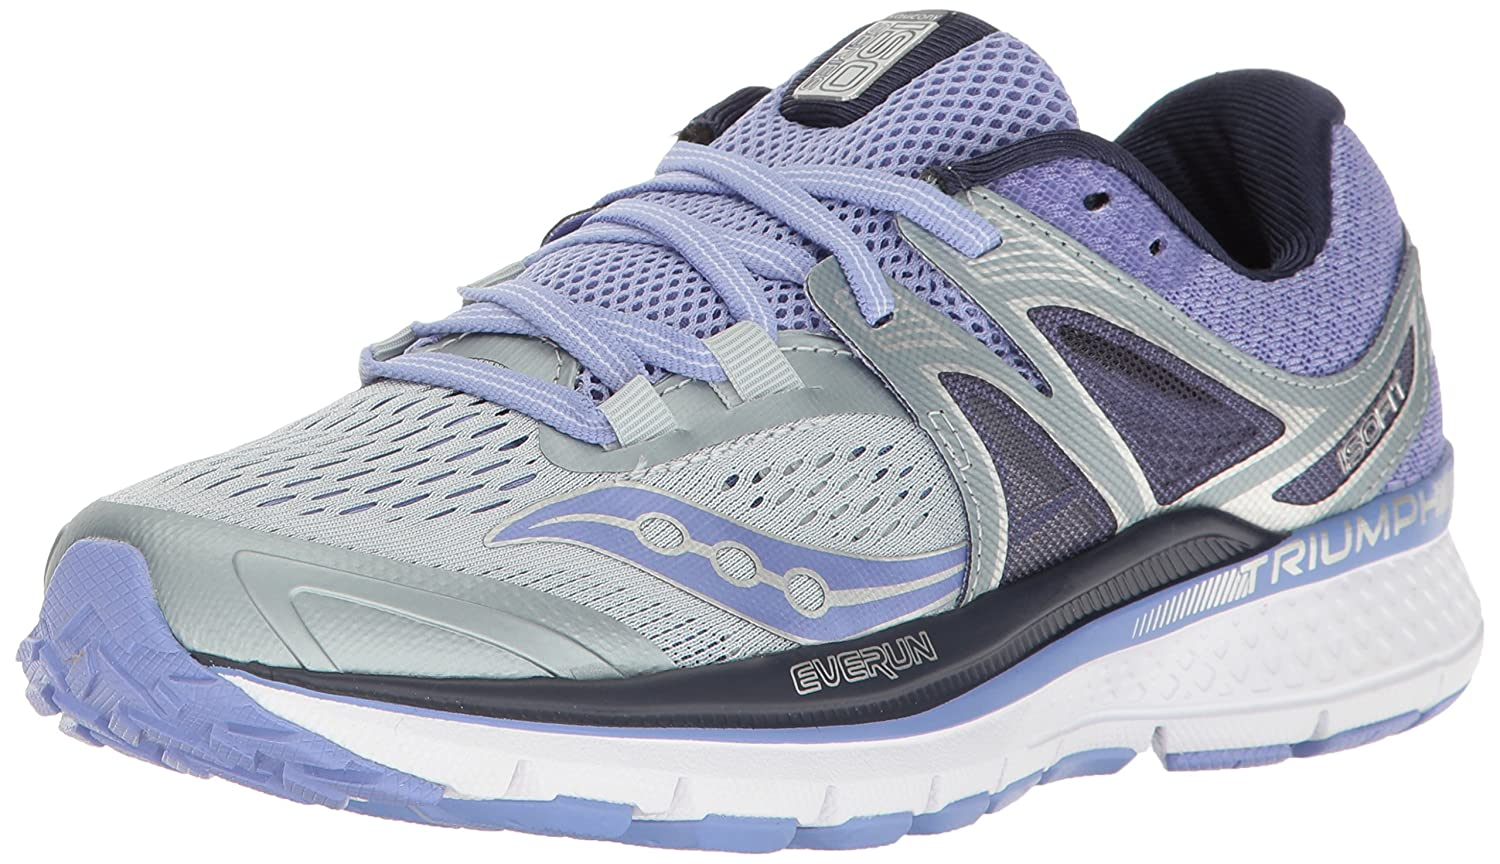 28e2aa72 Saucony Women's Triumph Iso 3 Running Shoe, Grey Purple, 8.5 B(M) US: Buy  Online at Low Prices in India - Amazon.in